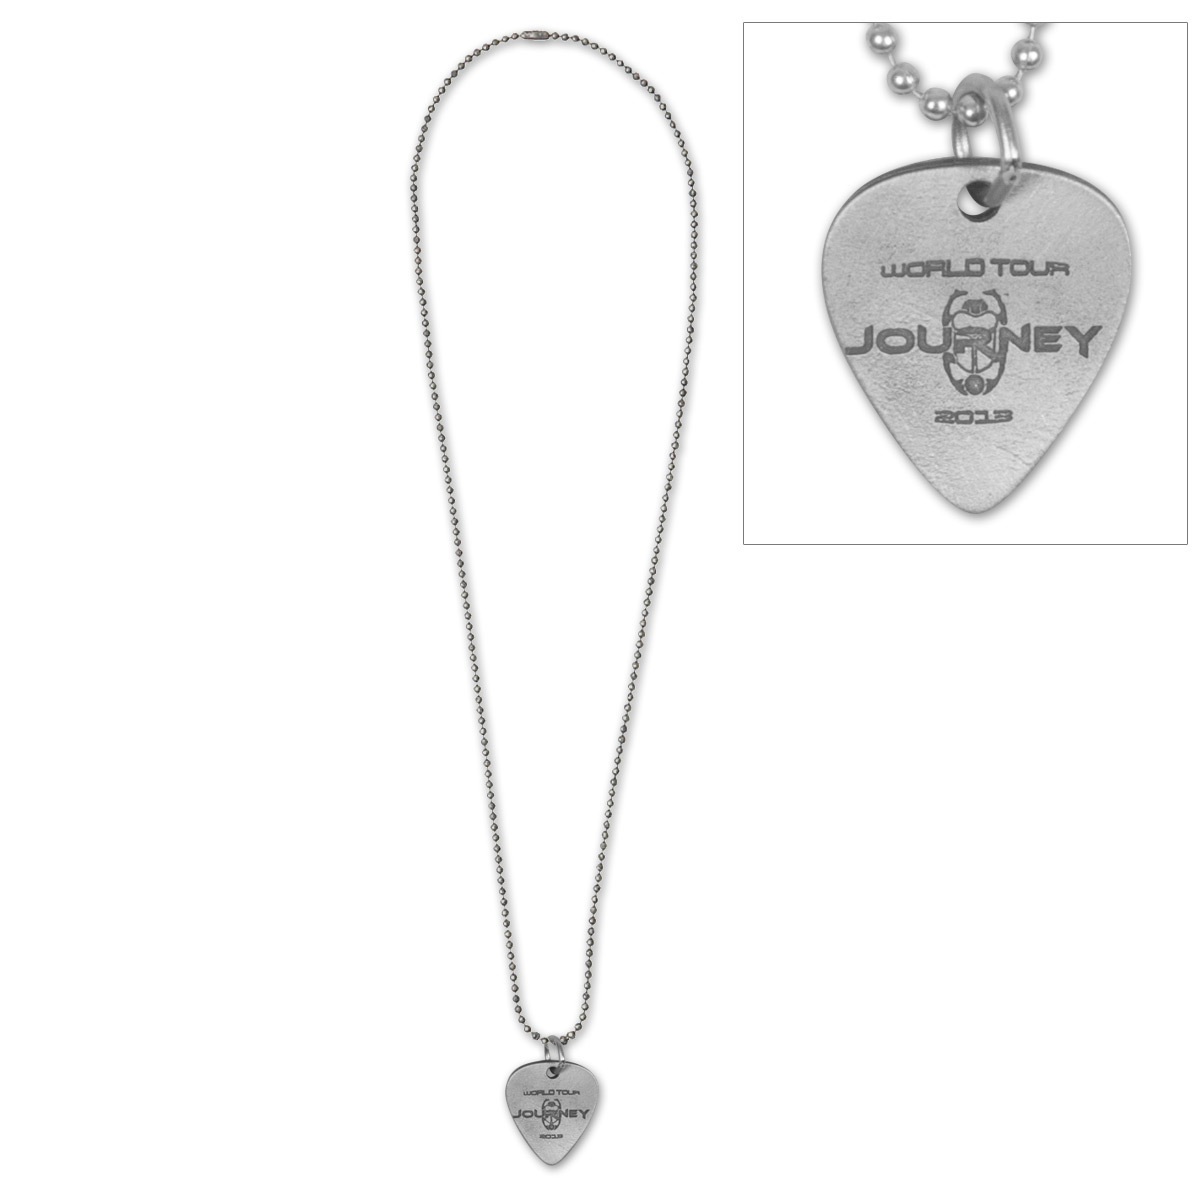 Journey 2013 World Tour Guitar Pick Necklace